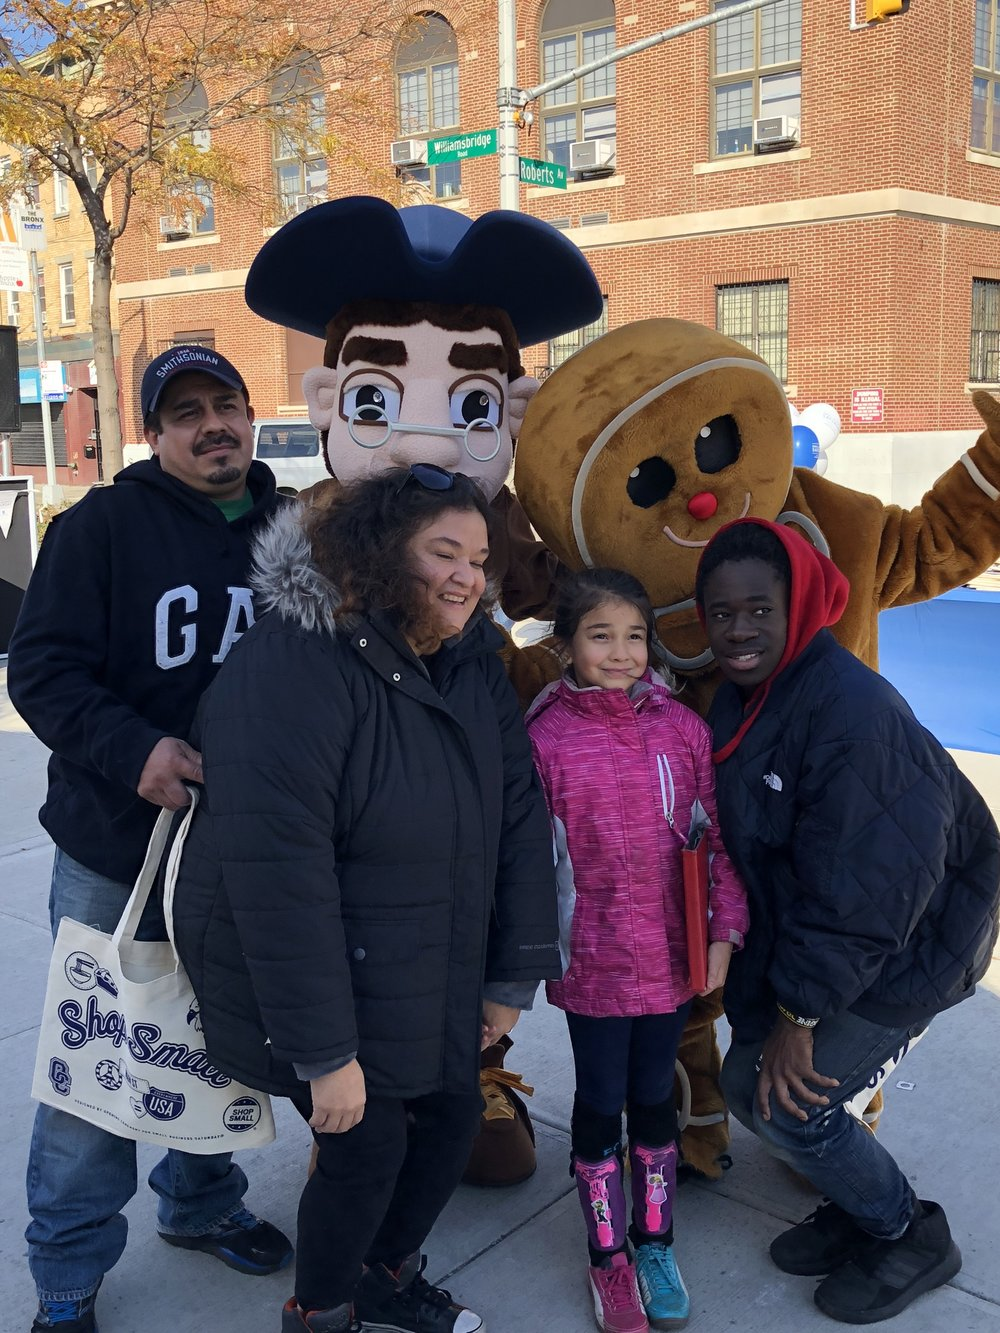 Community members posing with Wes and the Ginger Bread man!